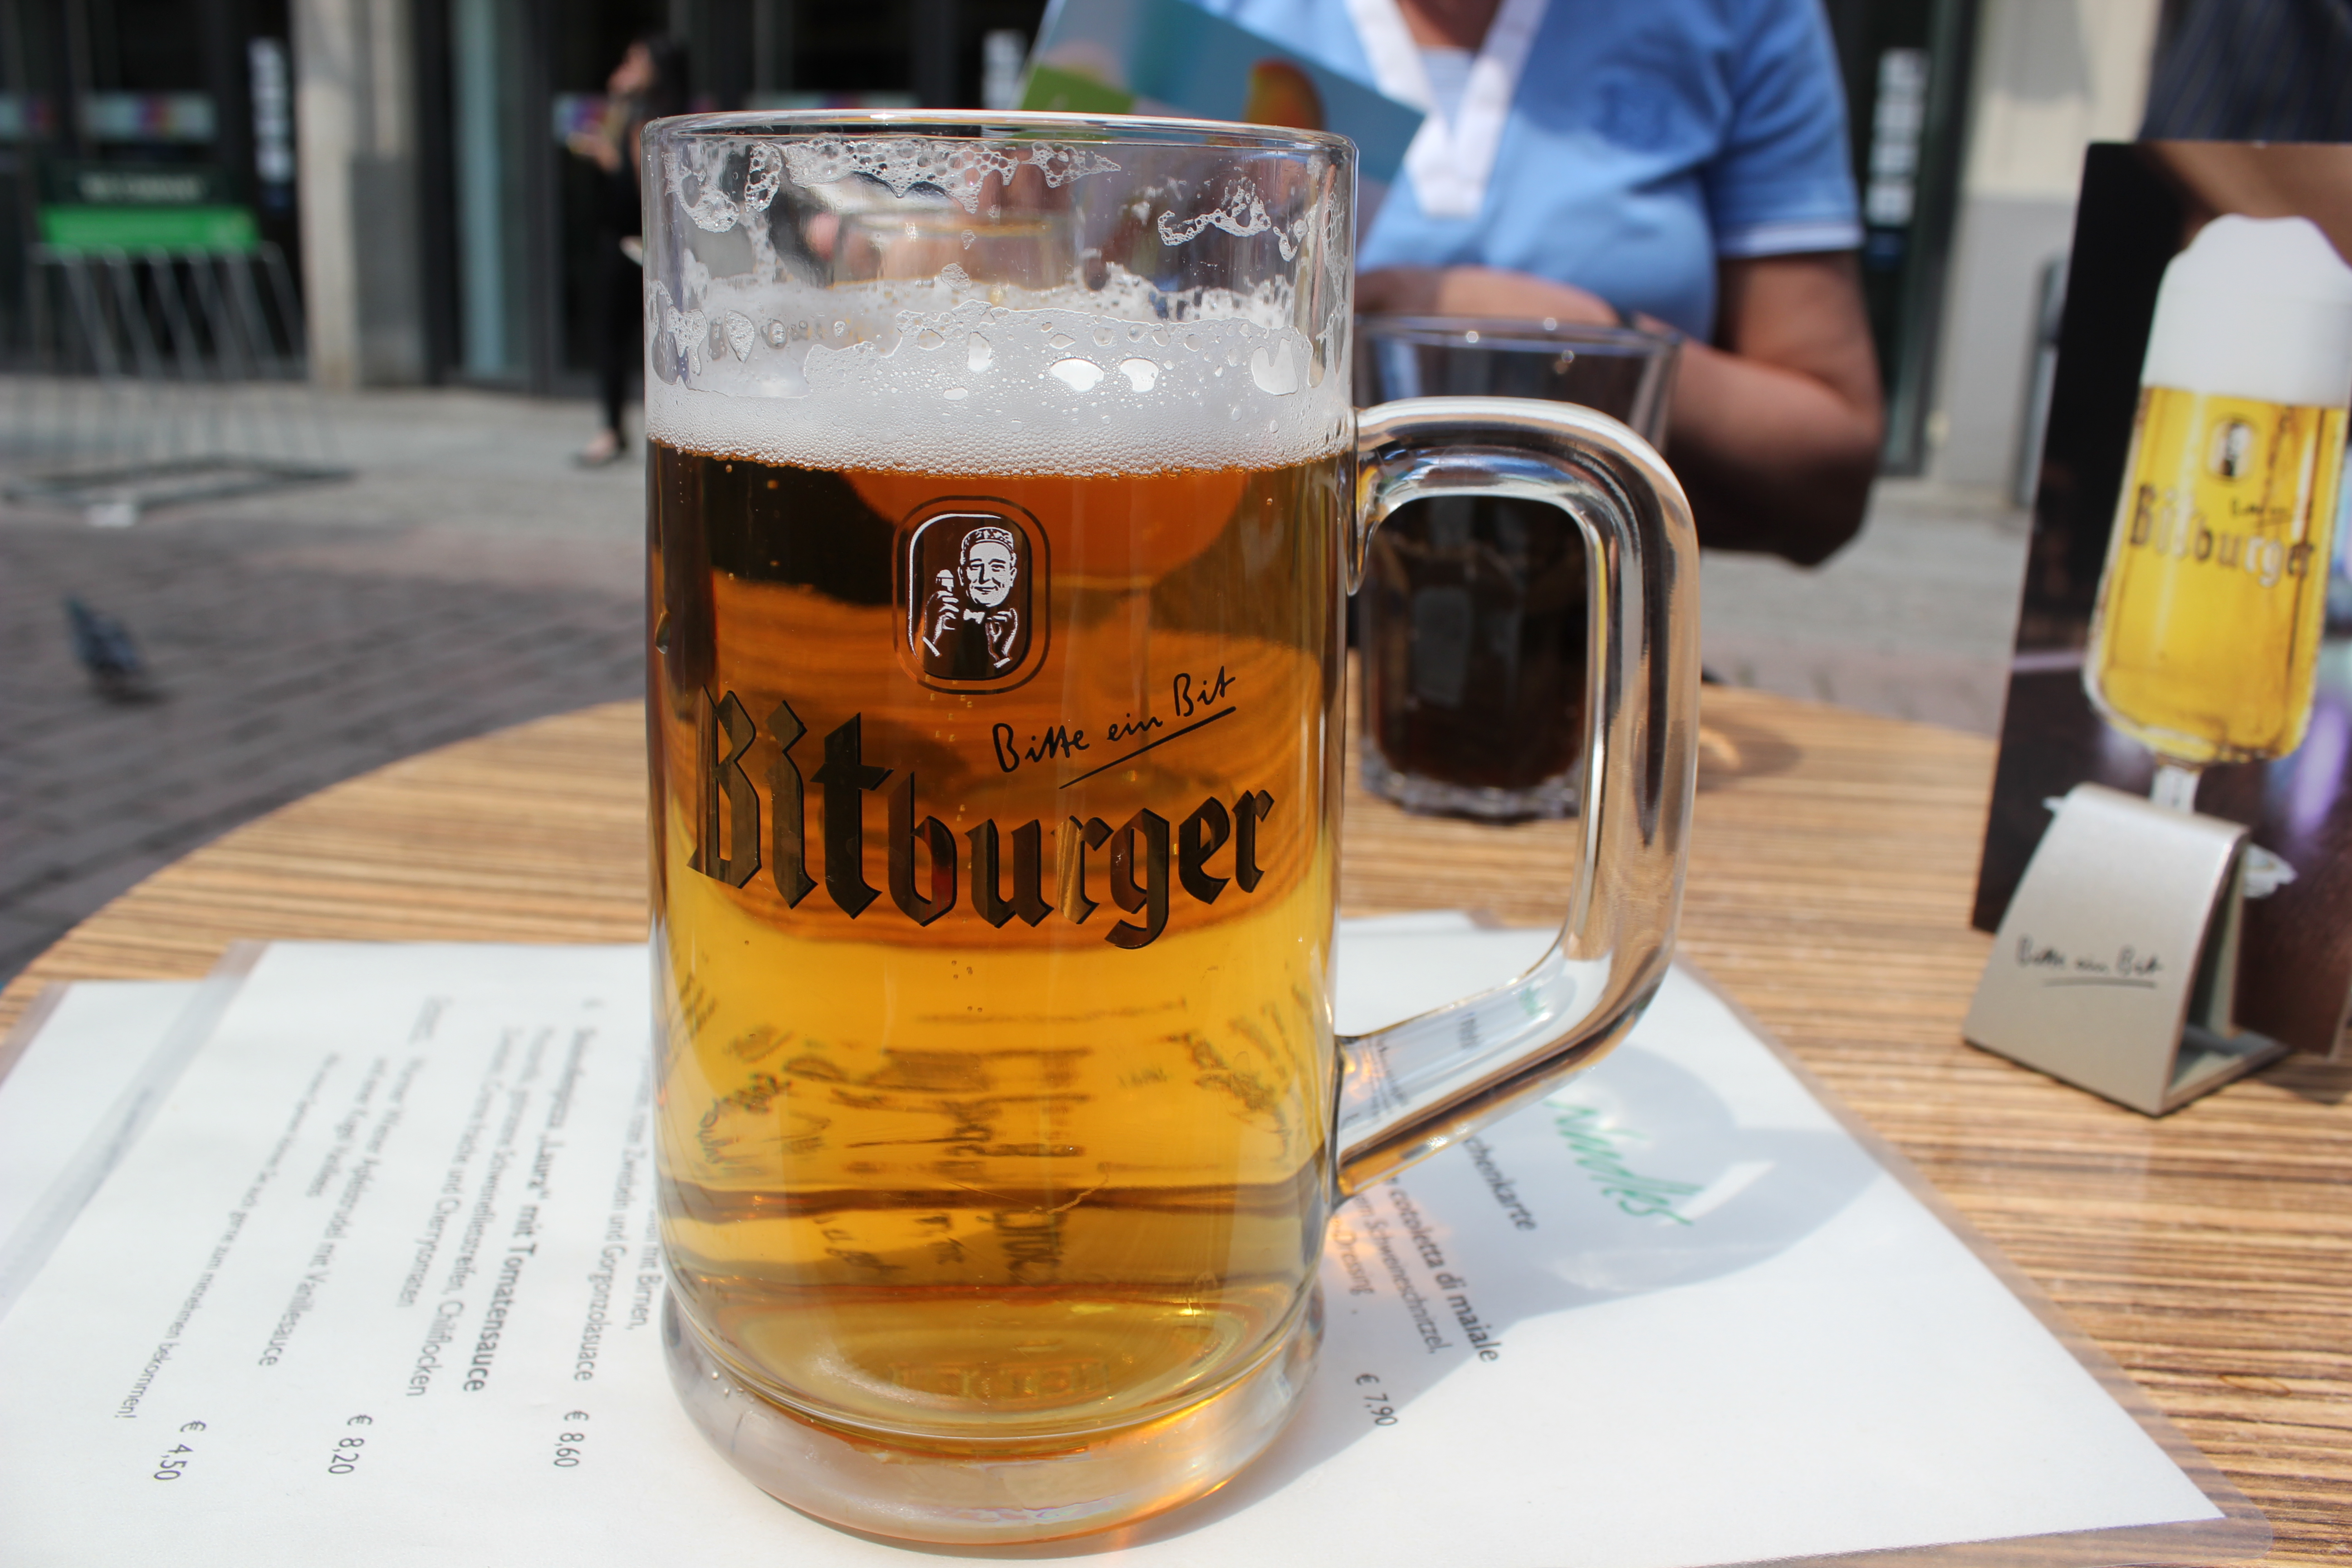 Lager - Wikipedia